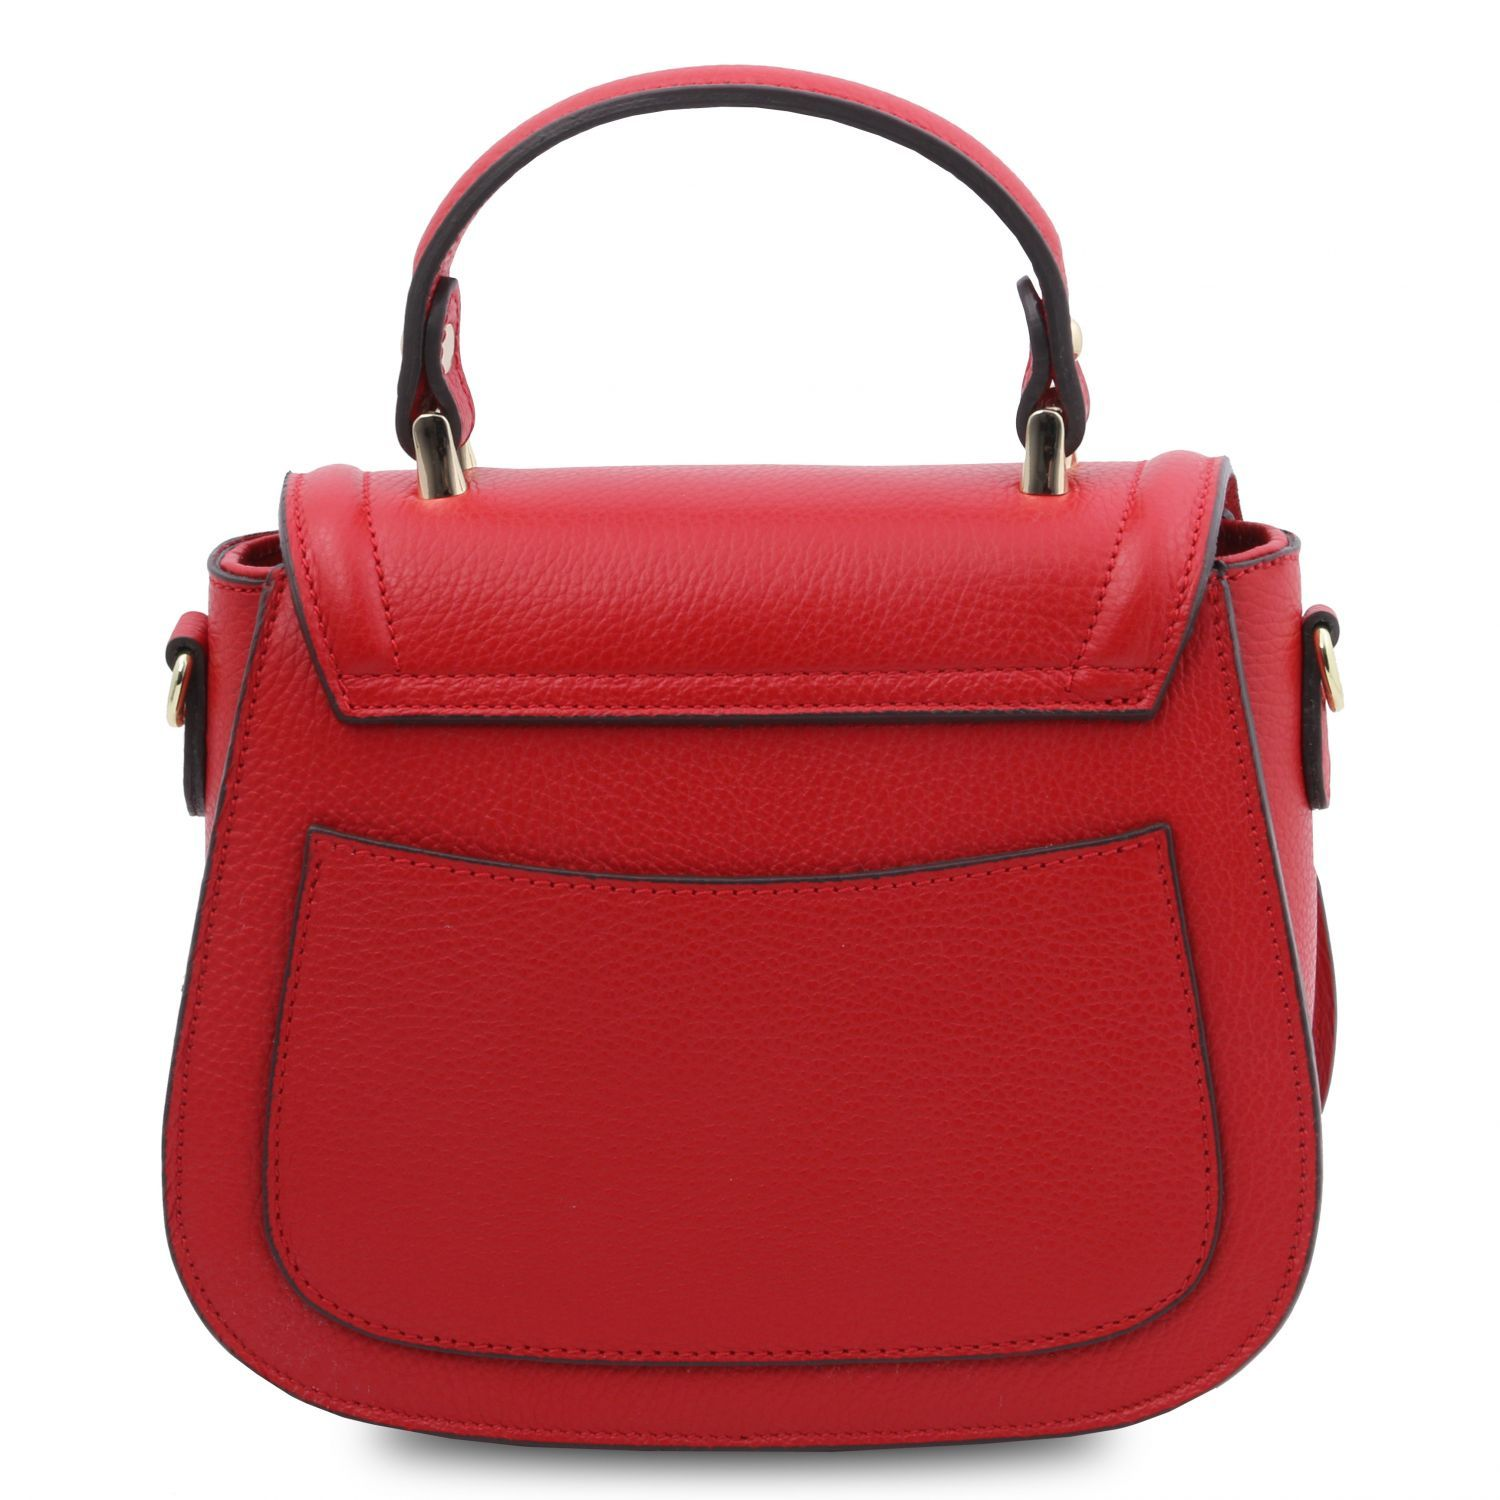 TL Bag - Leather handbag (TL141941) - Leather handbags | DILUSSOBAGS